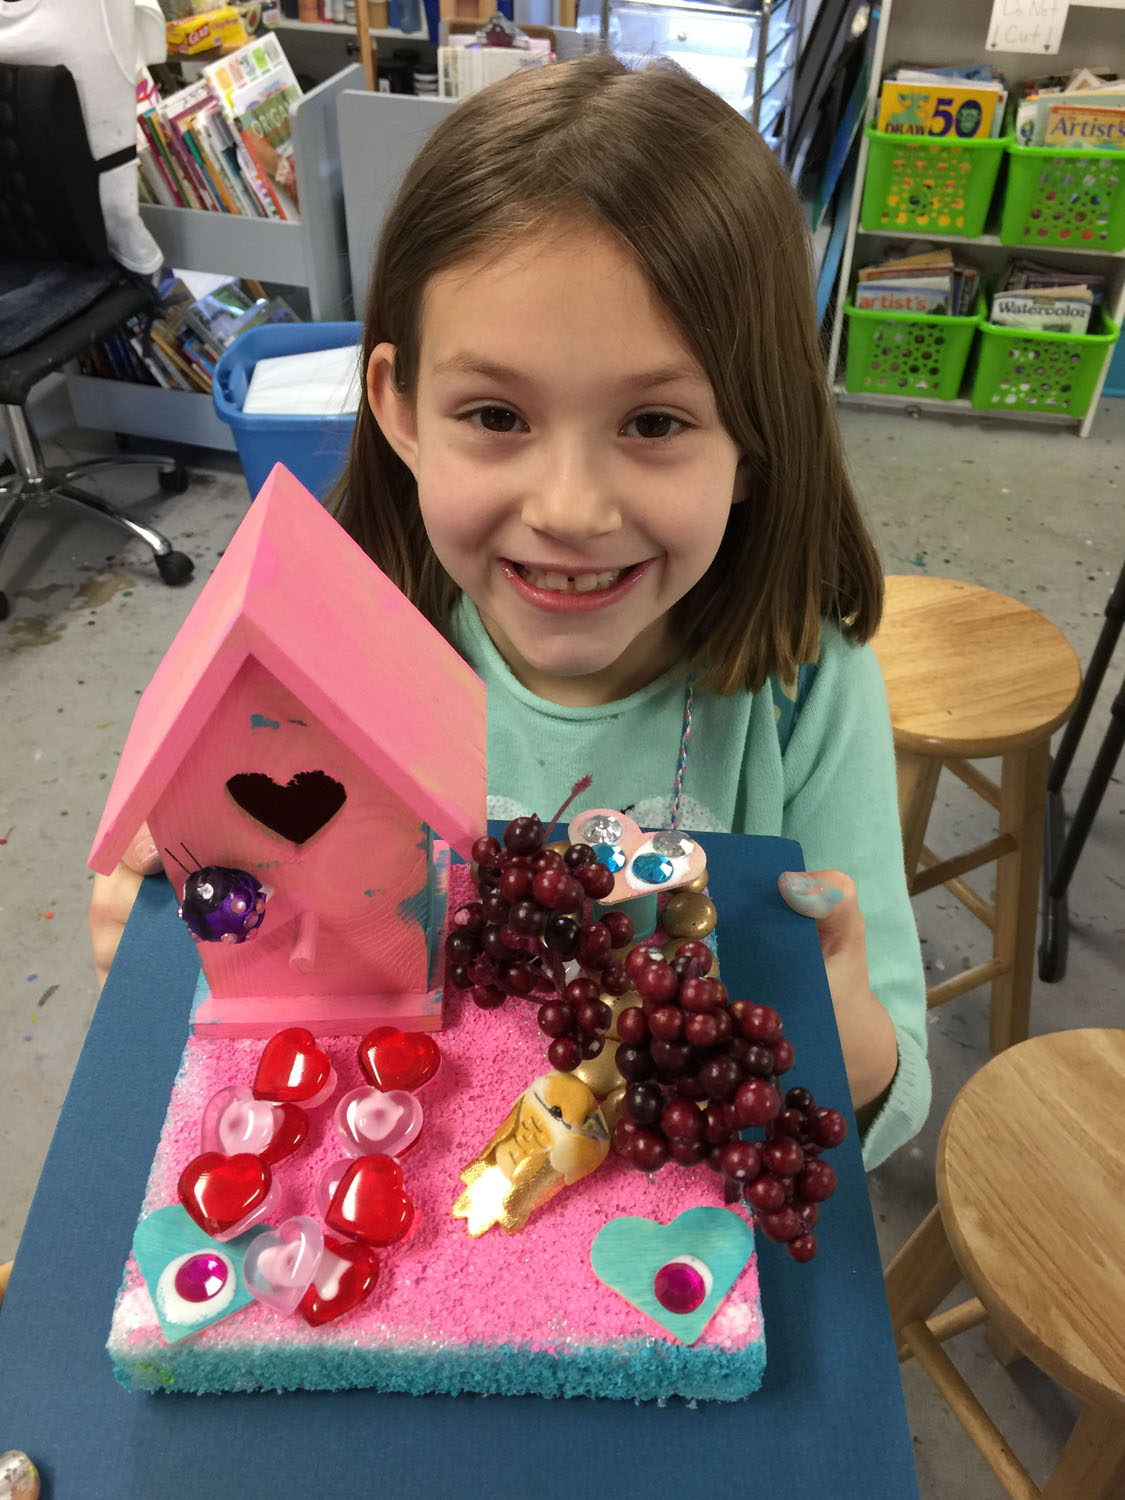 kids-art-parties-classes-and-camps-in-greensboro-nc-with-artist-tracey-j-marshallIMG_8699.jpg